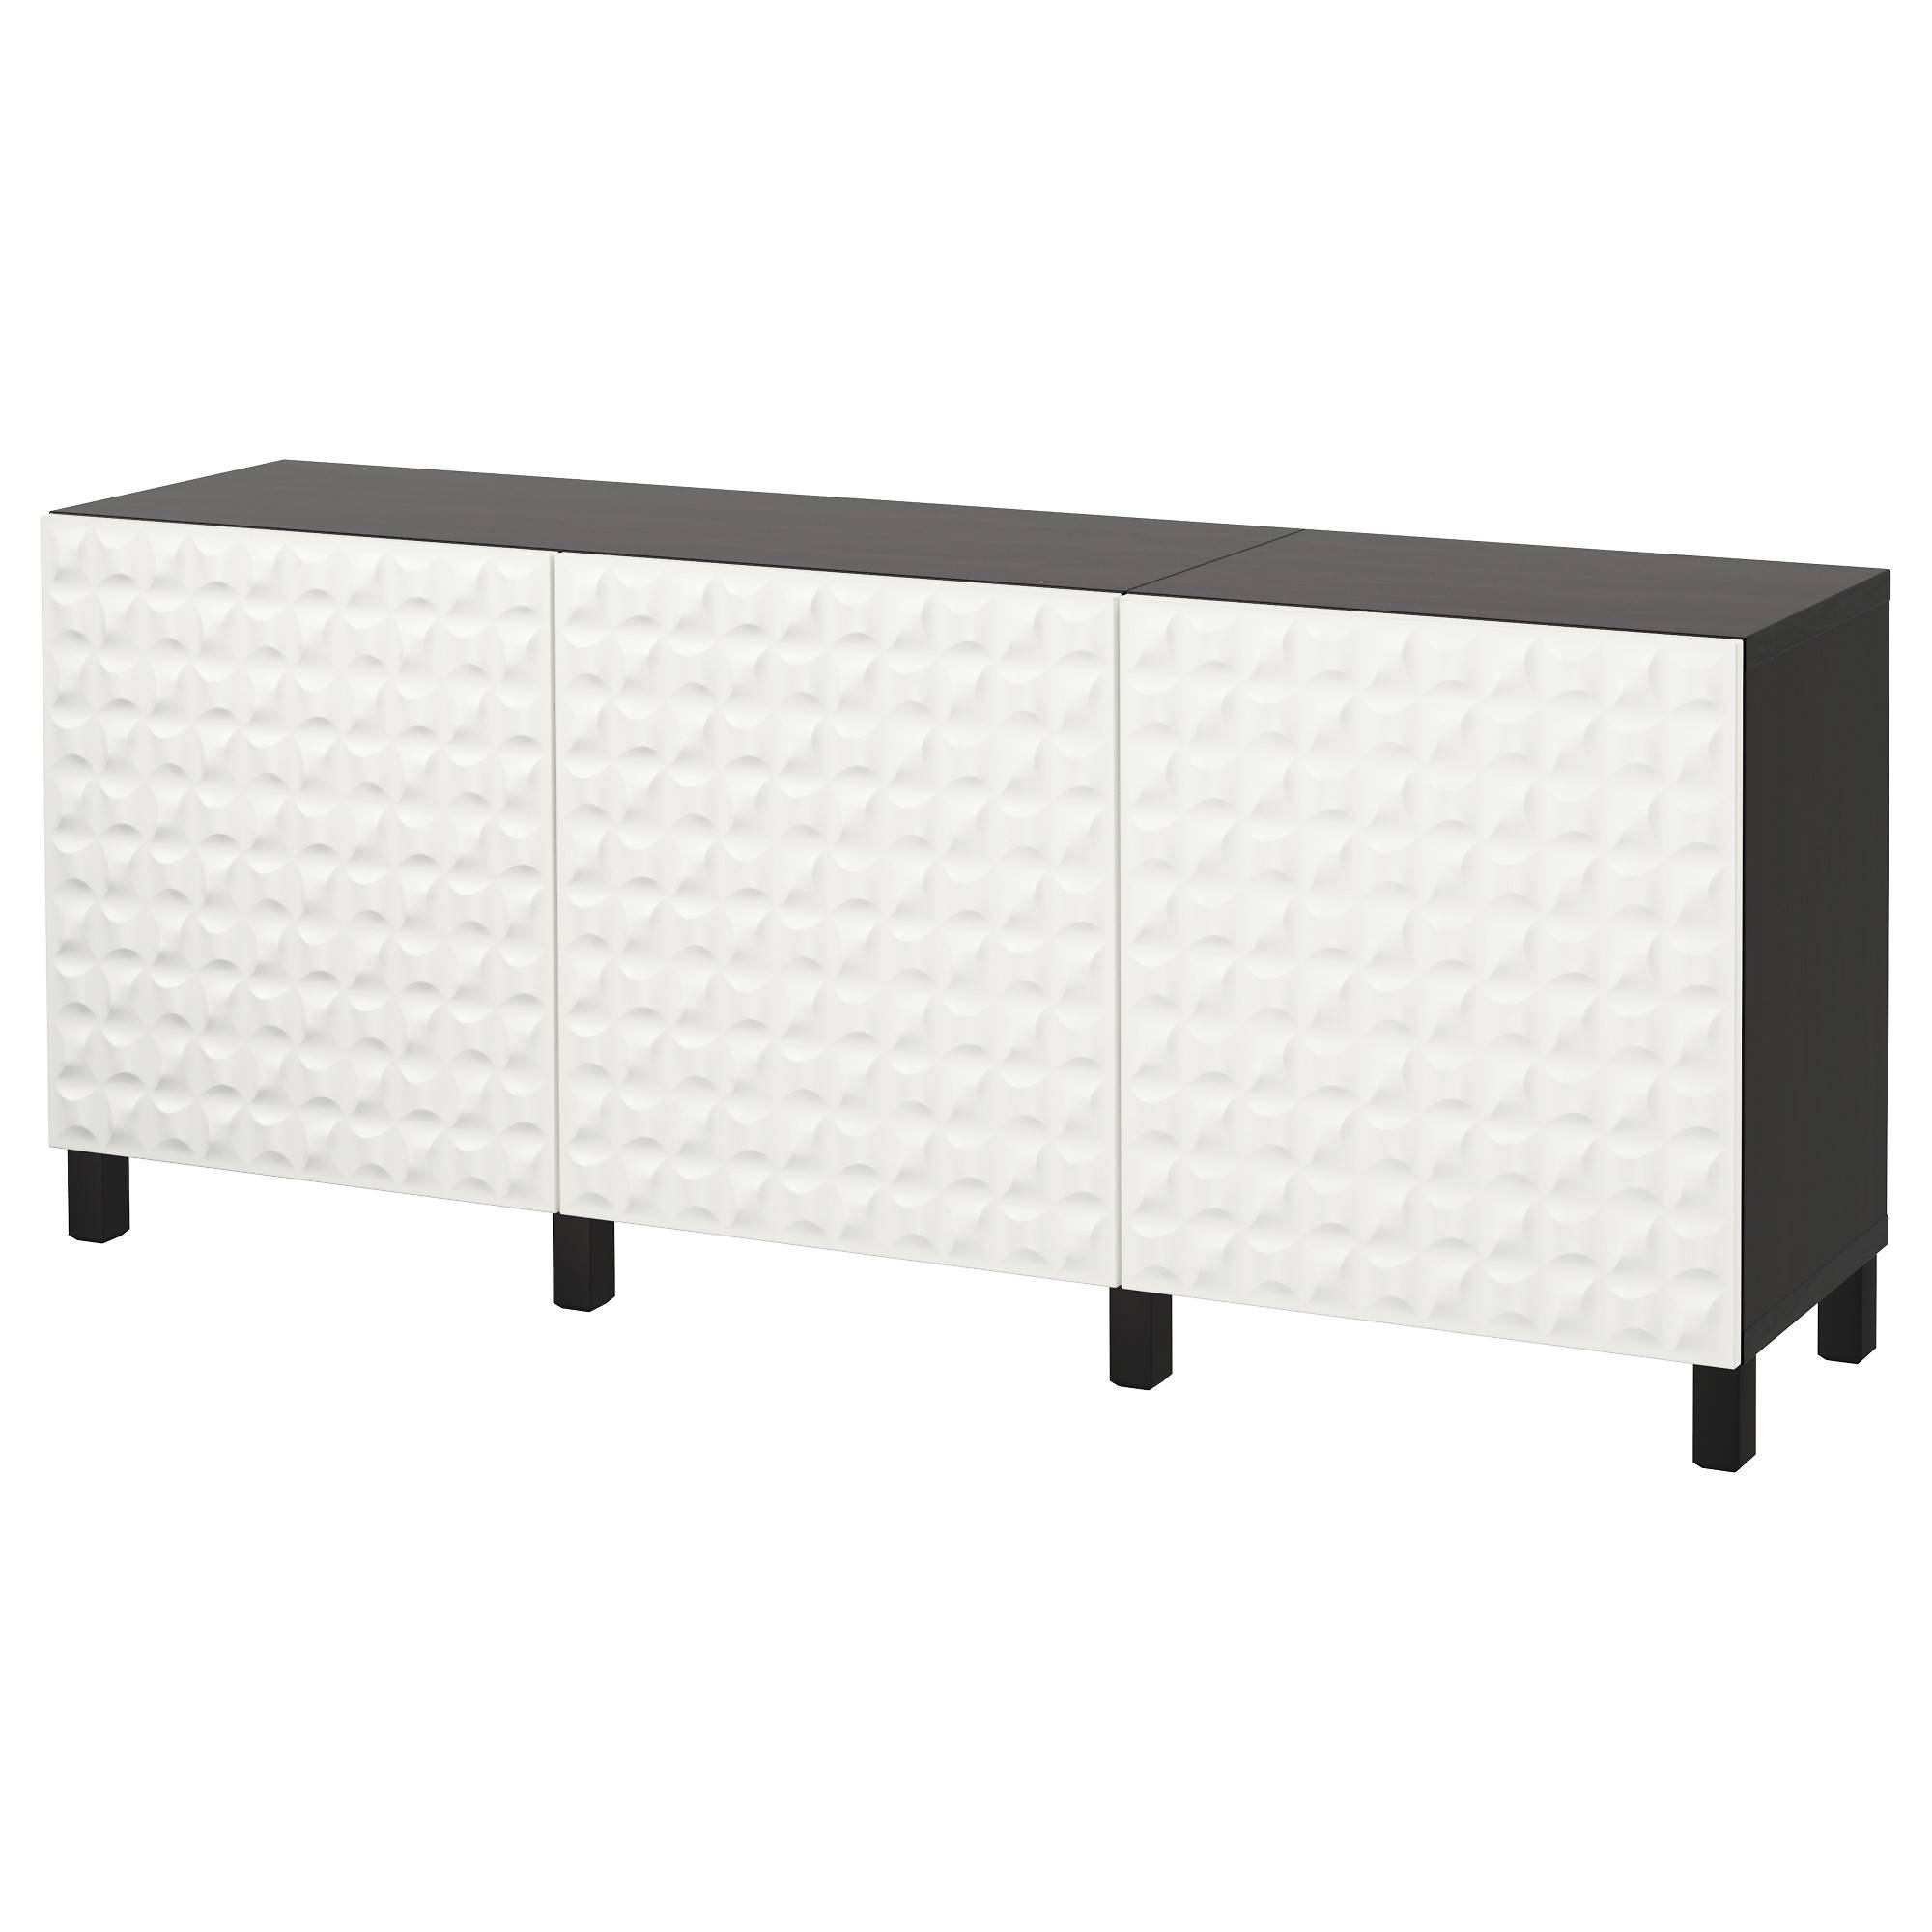 Sideboards & Buffet Cabinets – Ikea Pertaining To Best And Newest Ikea Sideboards (#13 of 15)